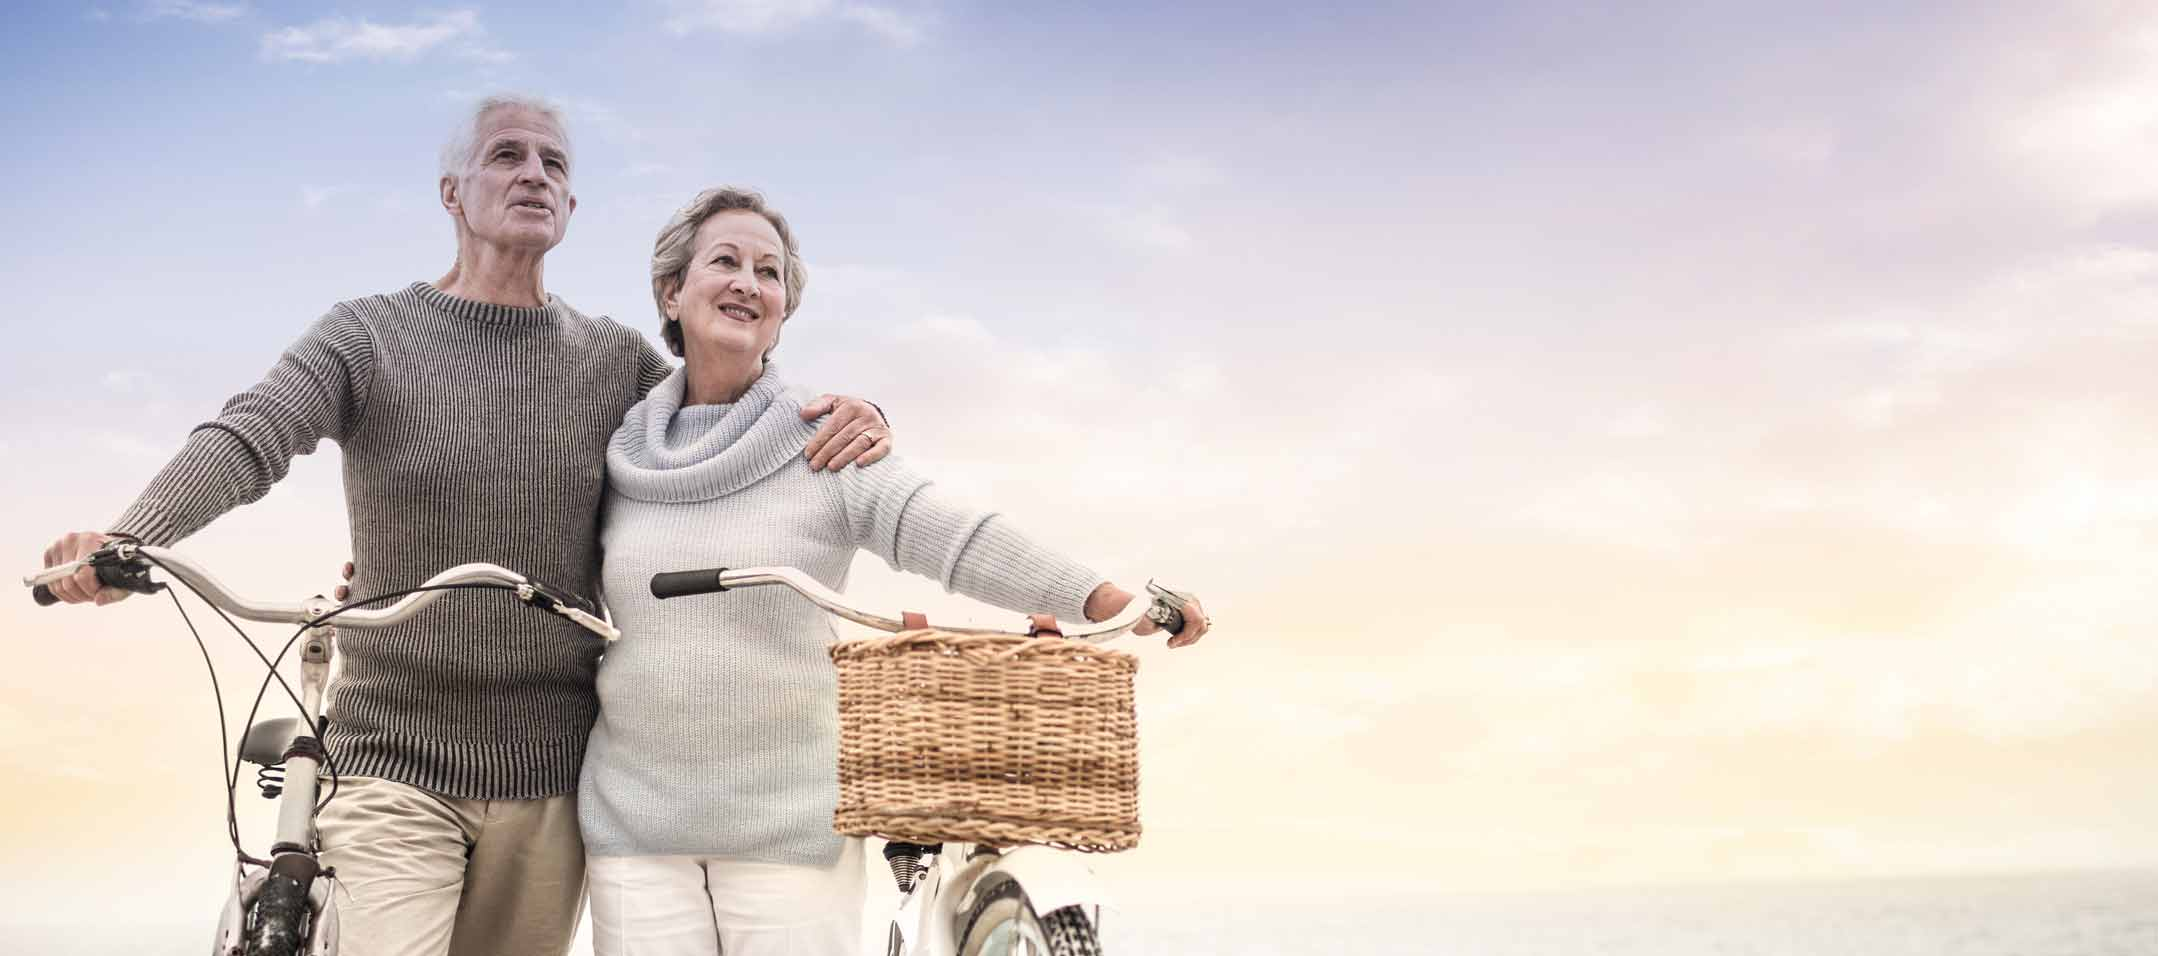 Active and Healthy Baby Boomers